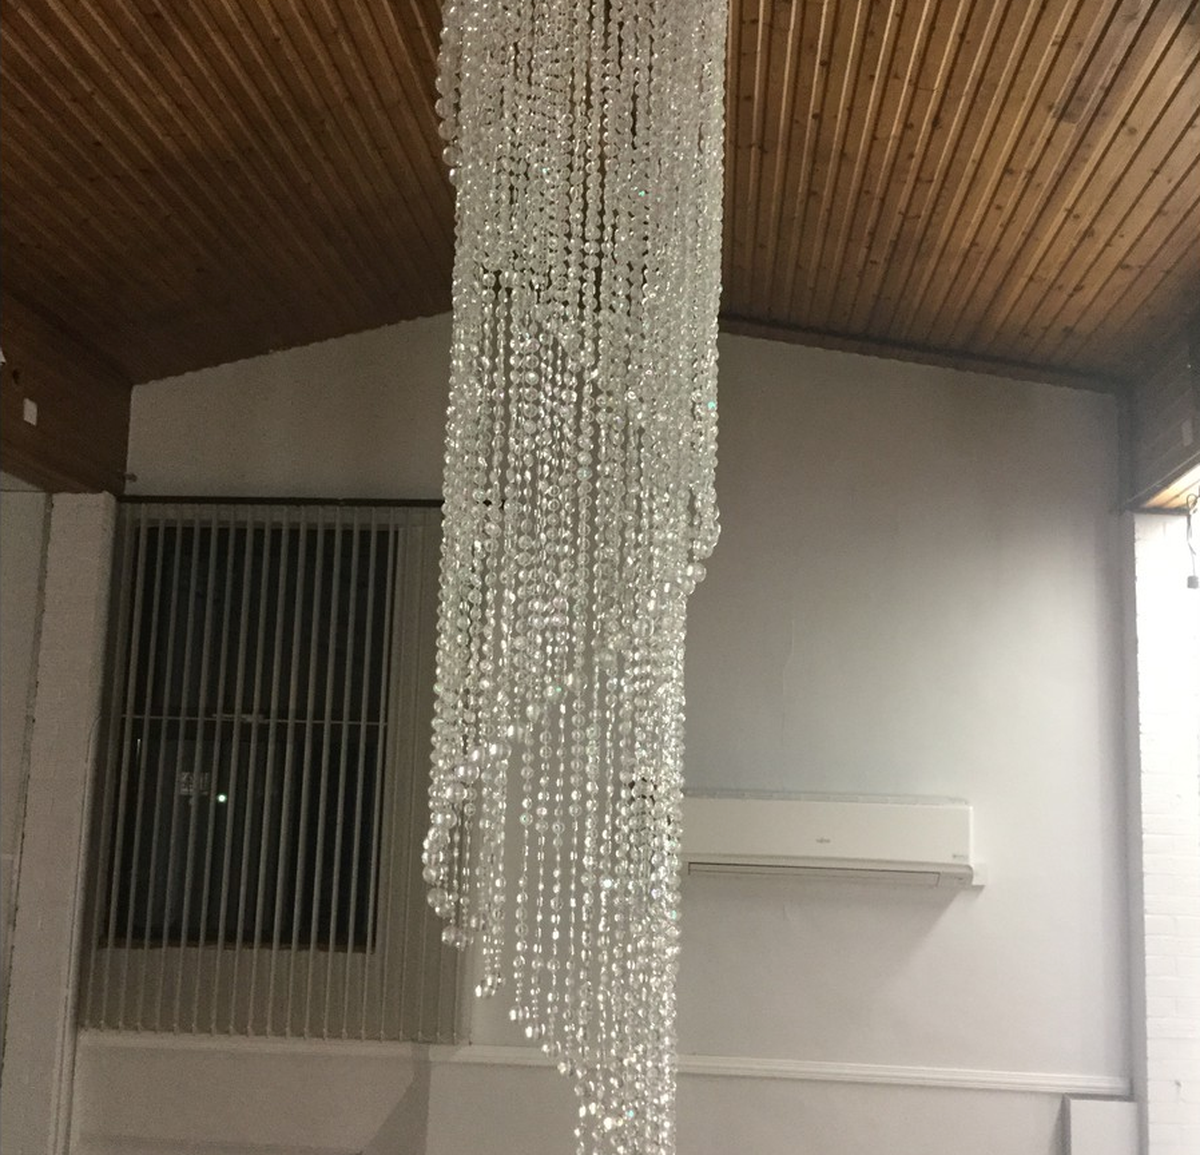 Curlew secondhand marquees marquee chandeliers secondhand glass chandeliers for sale aloadofball Gallery